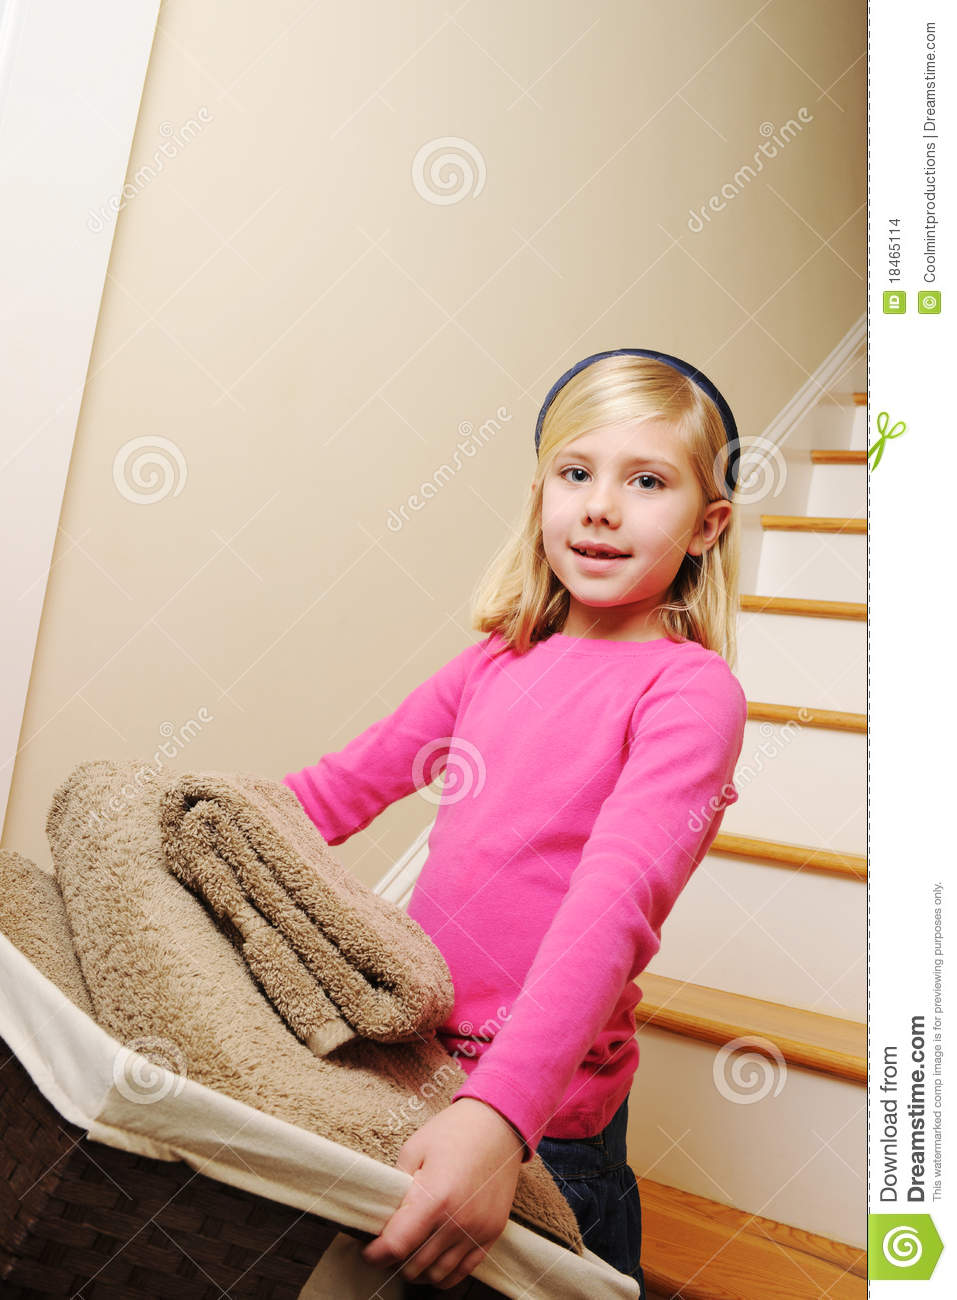 young girl cleaning laundry stock images